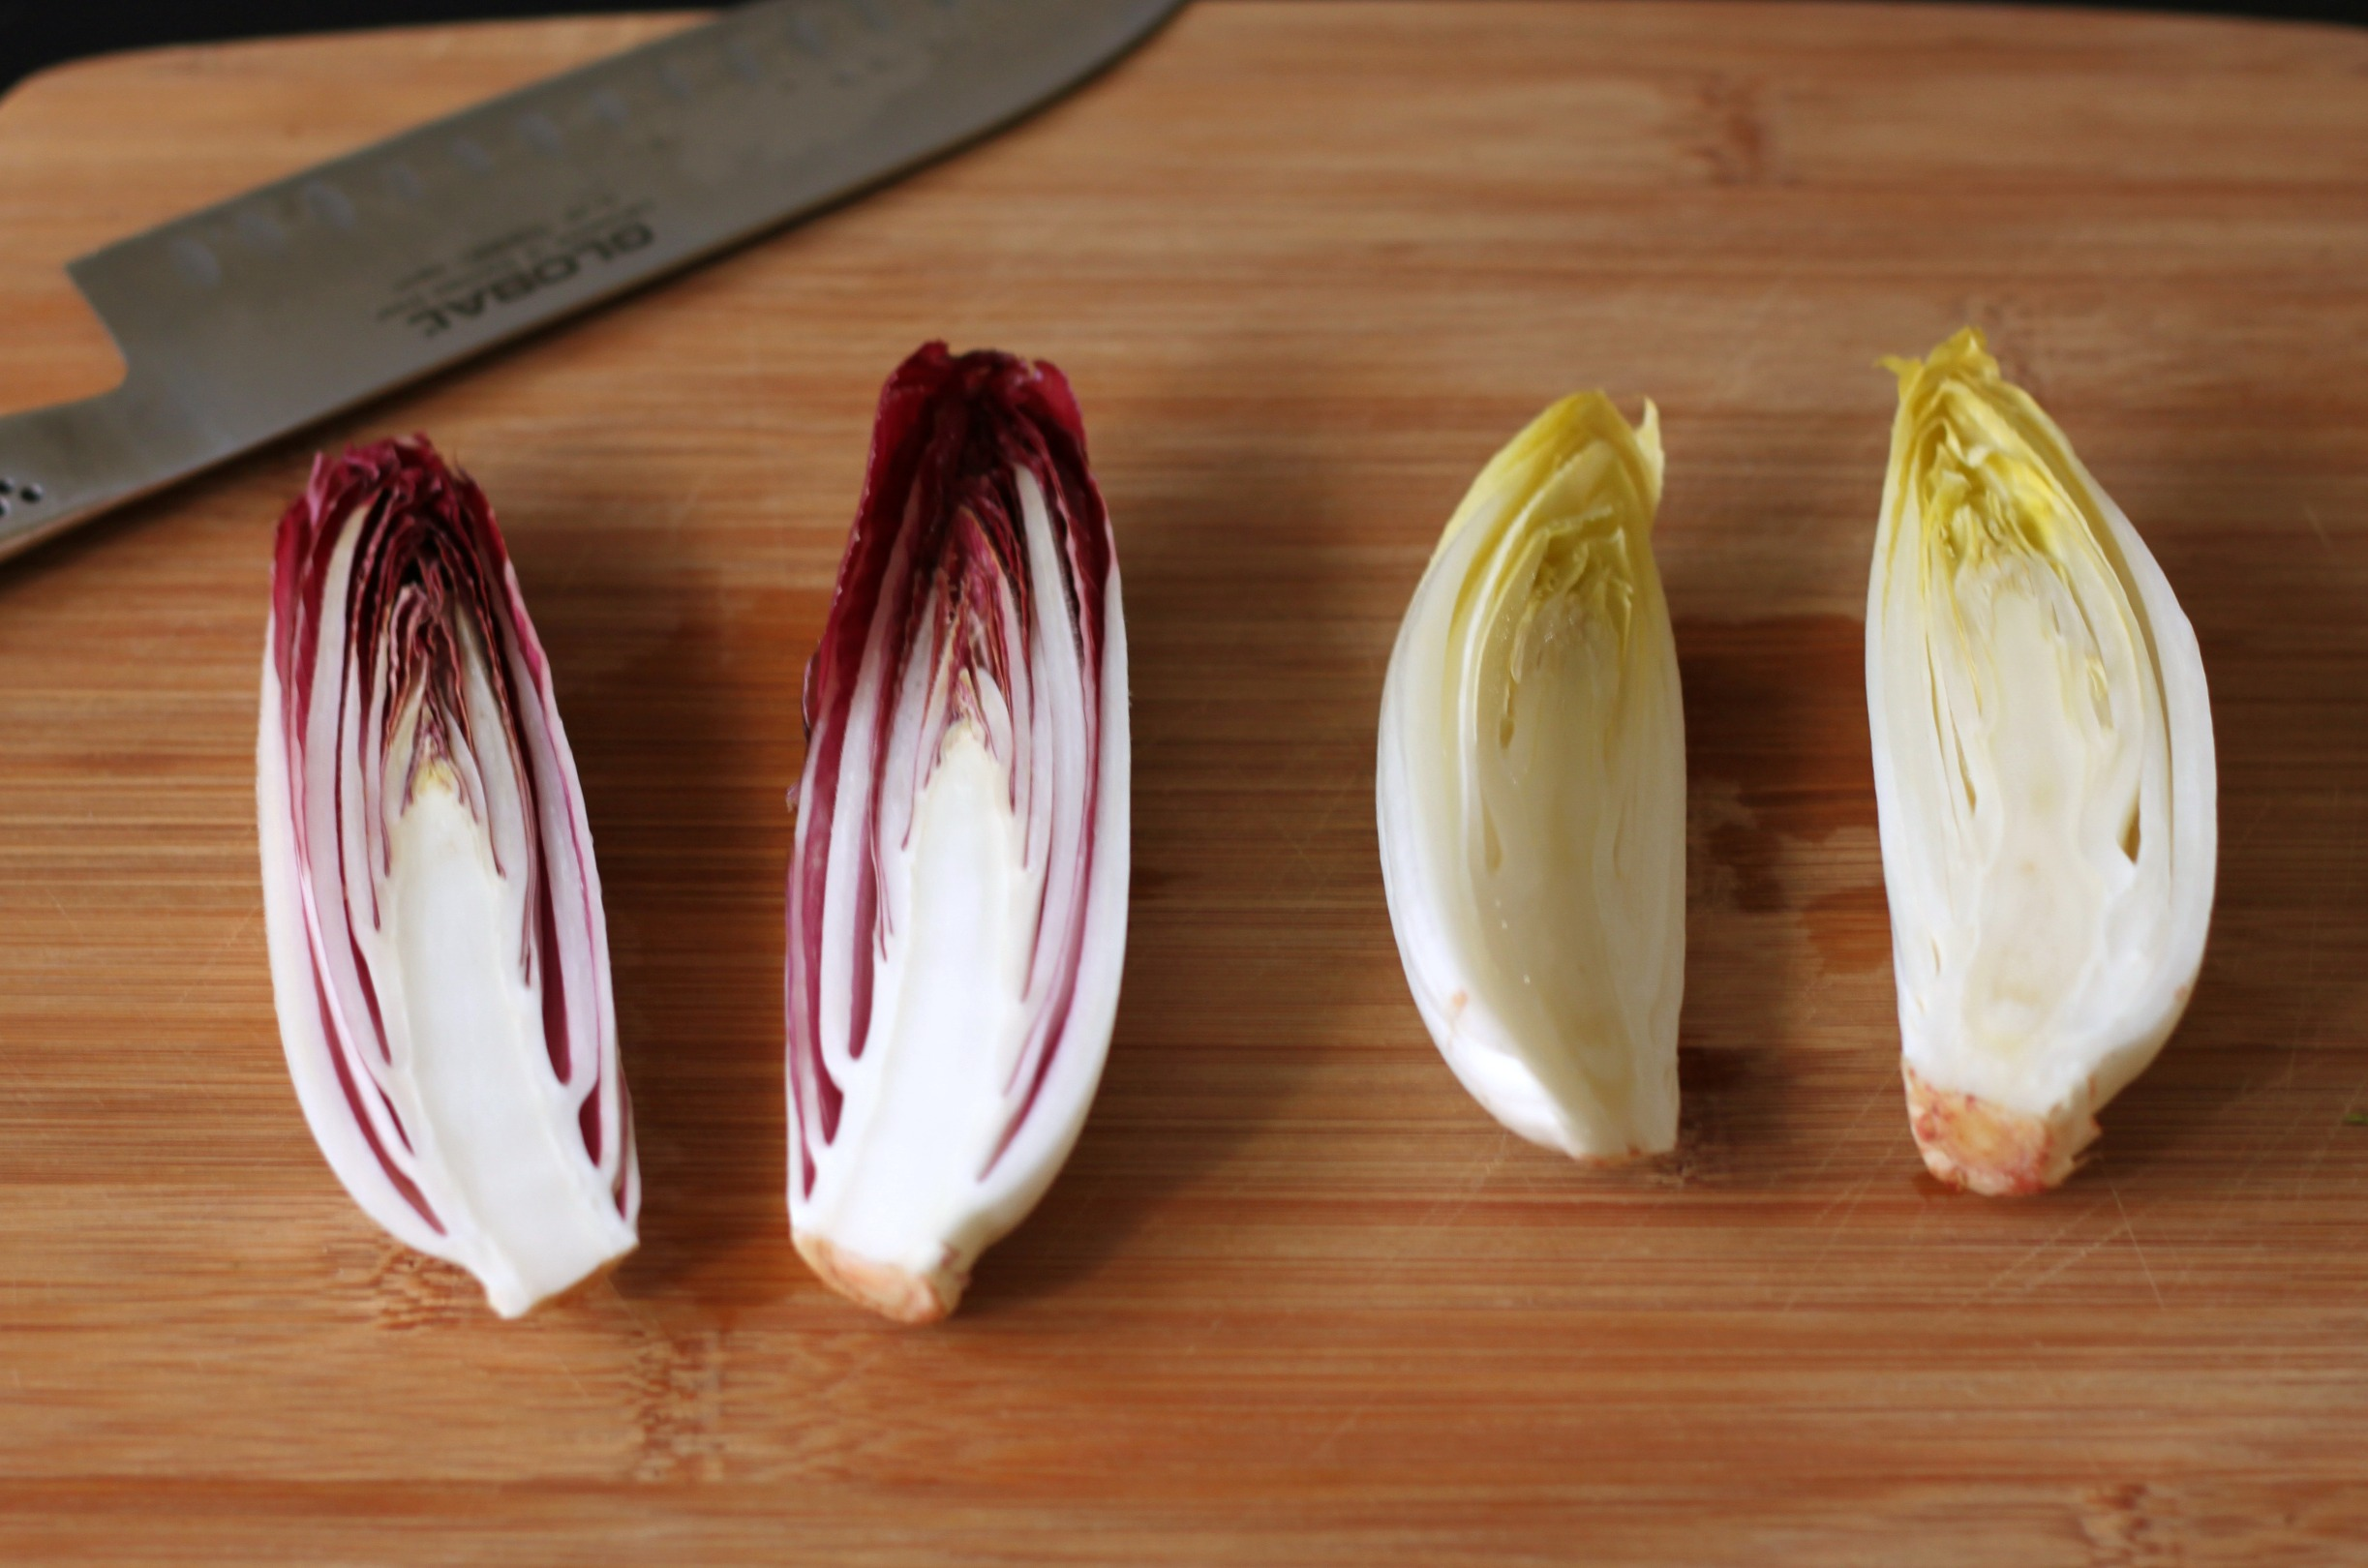 Slice endives in half lengthwise